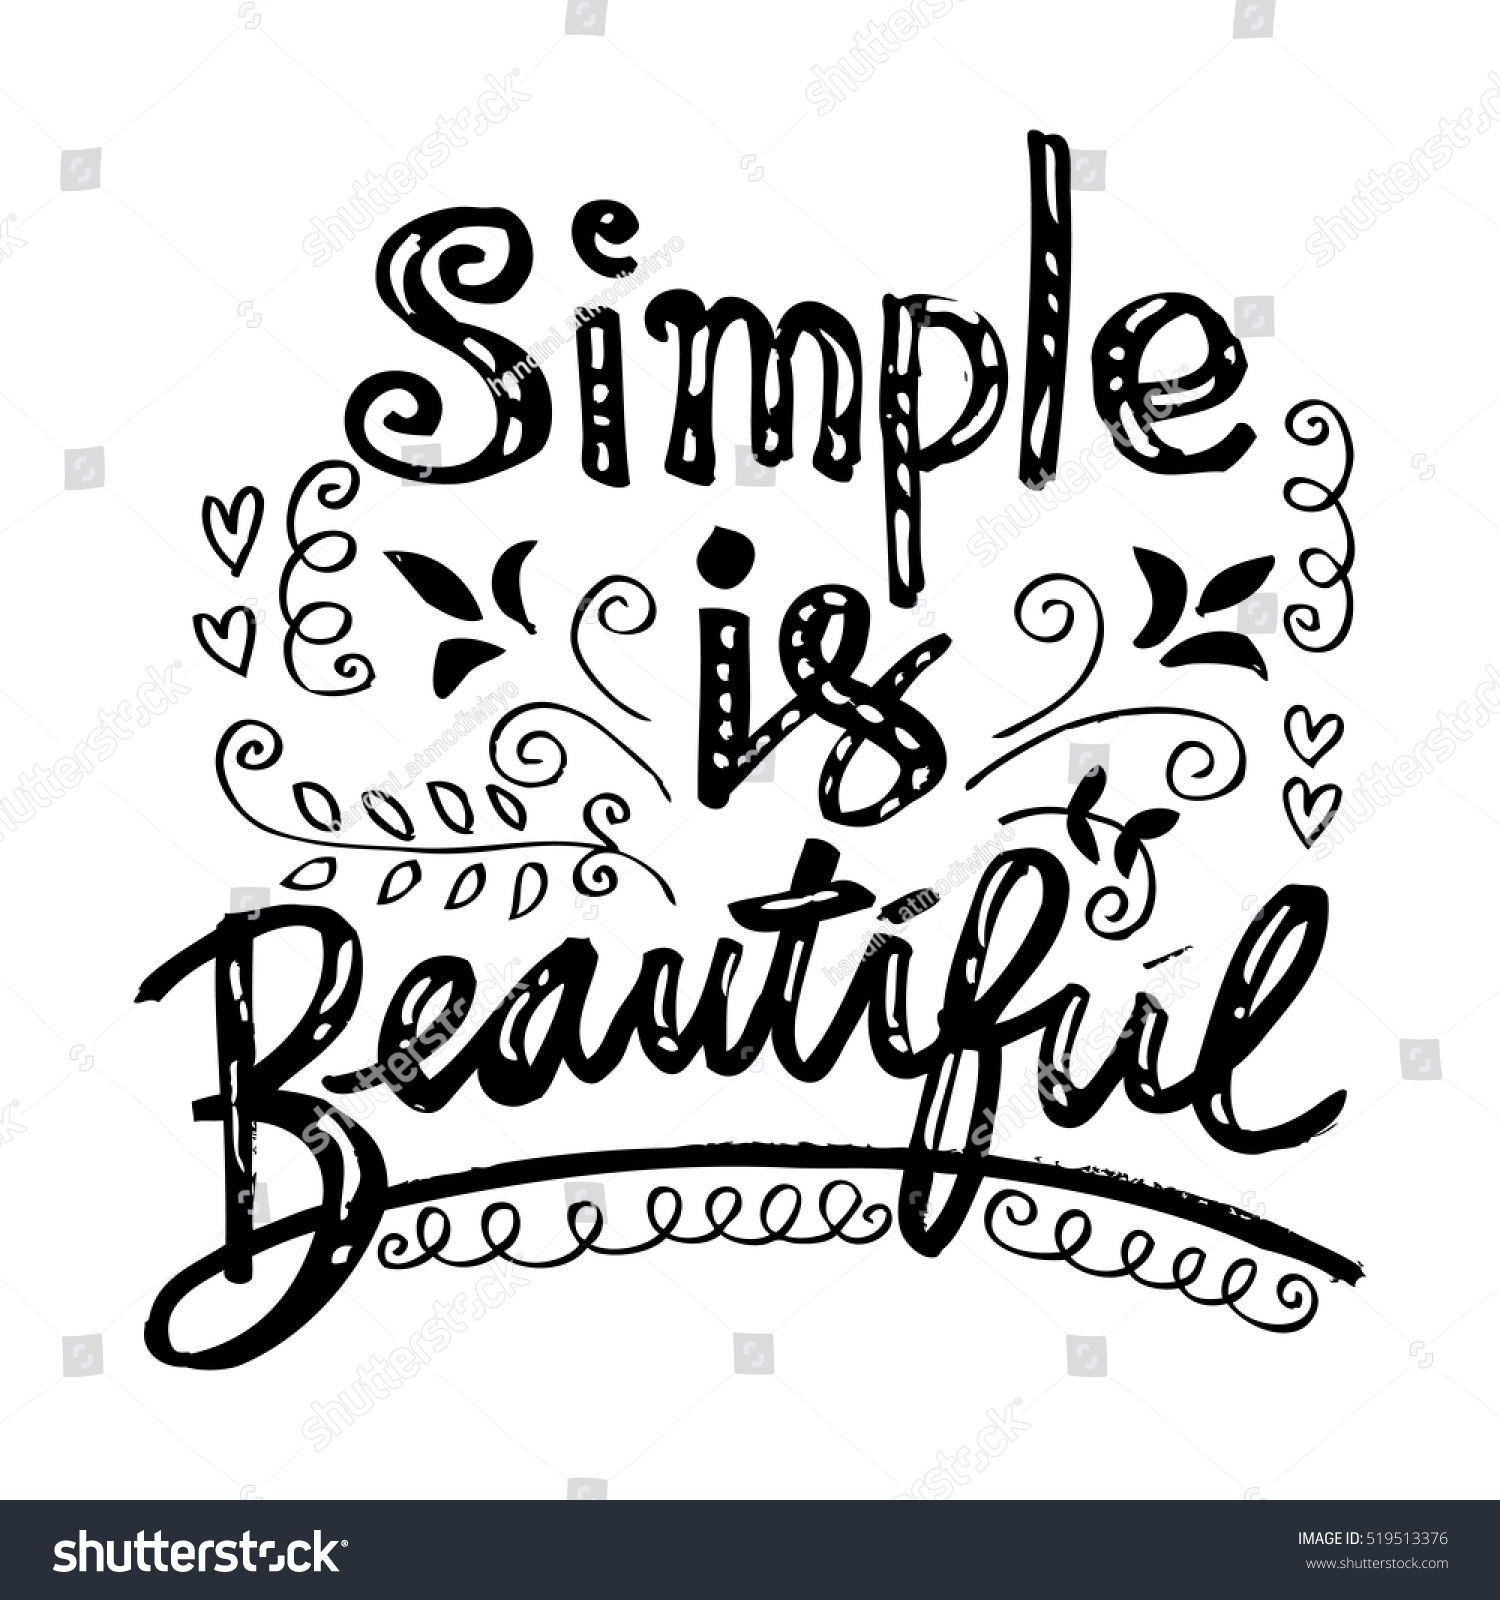 Beautiful Women Quotes Woman Quote Simple Beautiful Hand Lettered Stock Vector 519513376